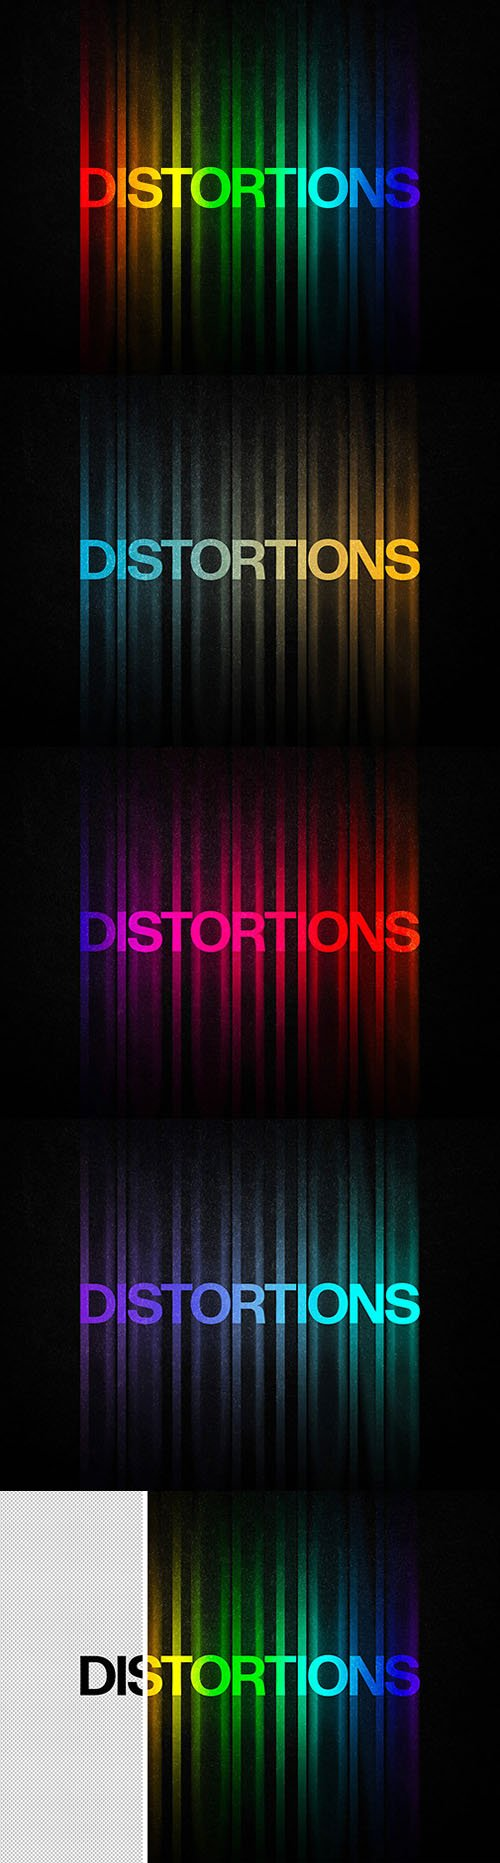 Color Distortion Text Effects for Photoshop